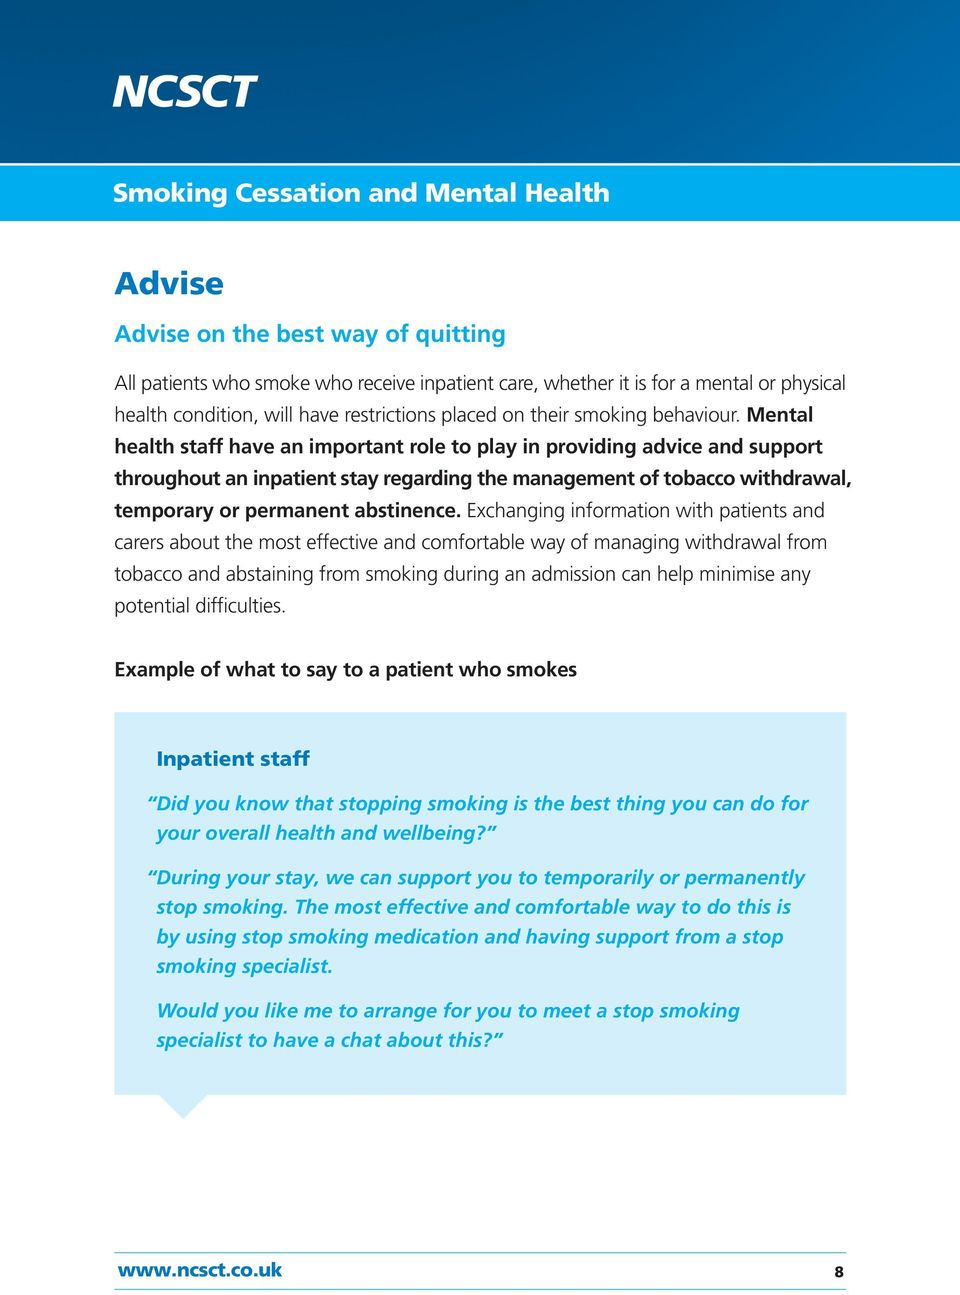 Mental health staff have an important role to play in providing advice and support throughout an inpatient stay regarding the management of tobacco withdrawal, temporary or permanent abstinence.